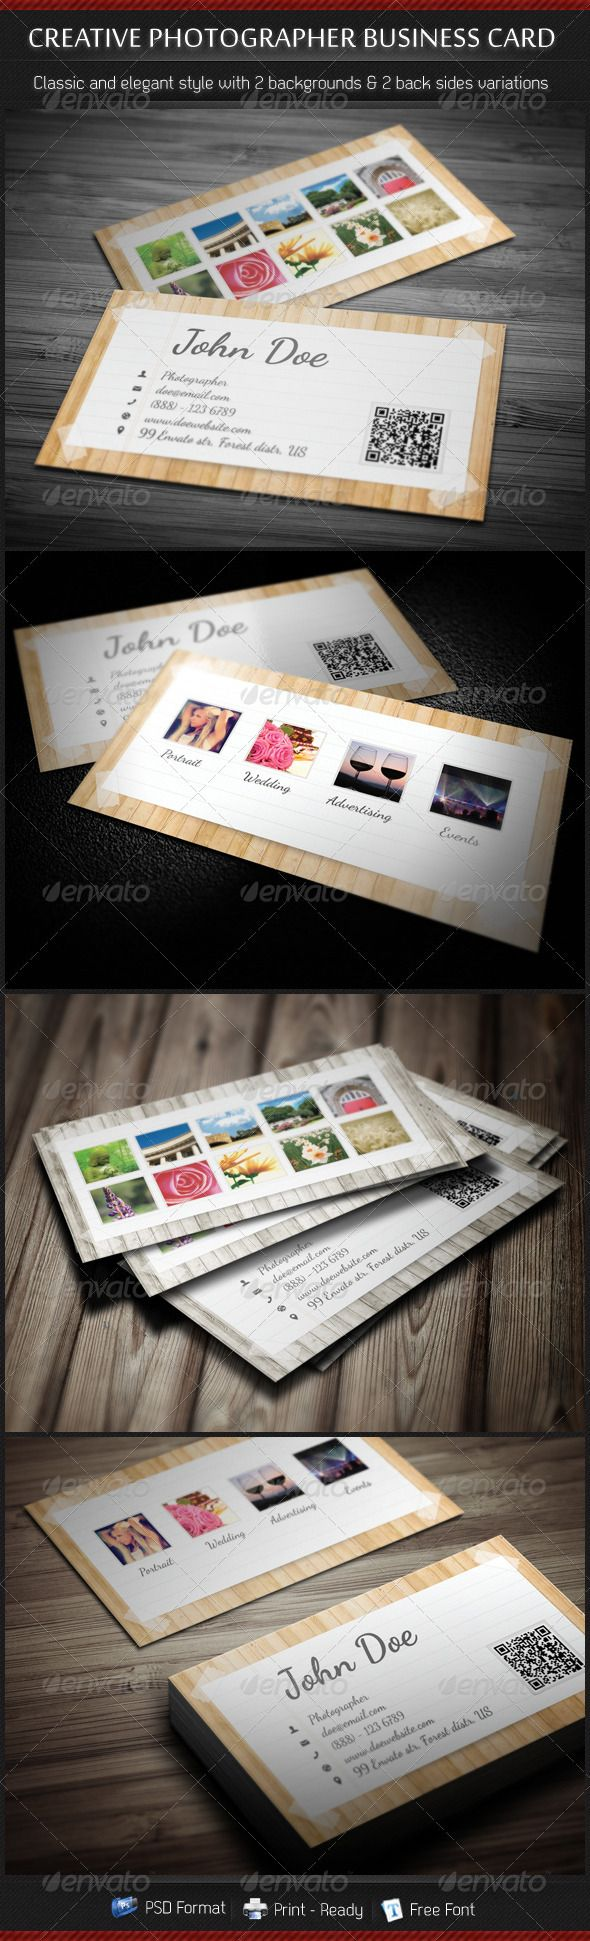 17 best pet sitting business cards images on pinterest dogs creative photographer business card magicingreecefo Gallery